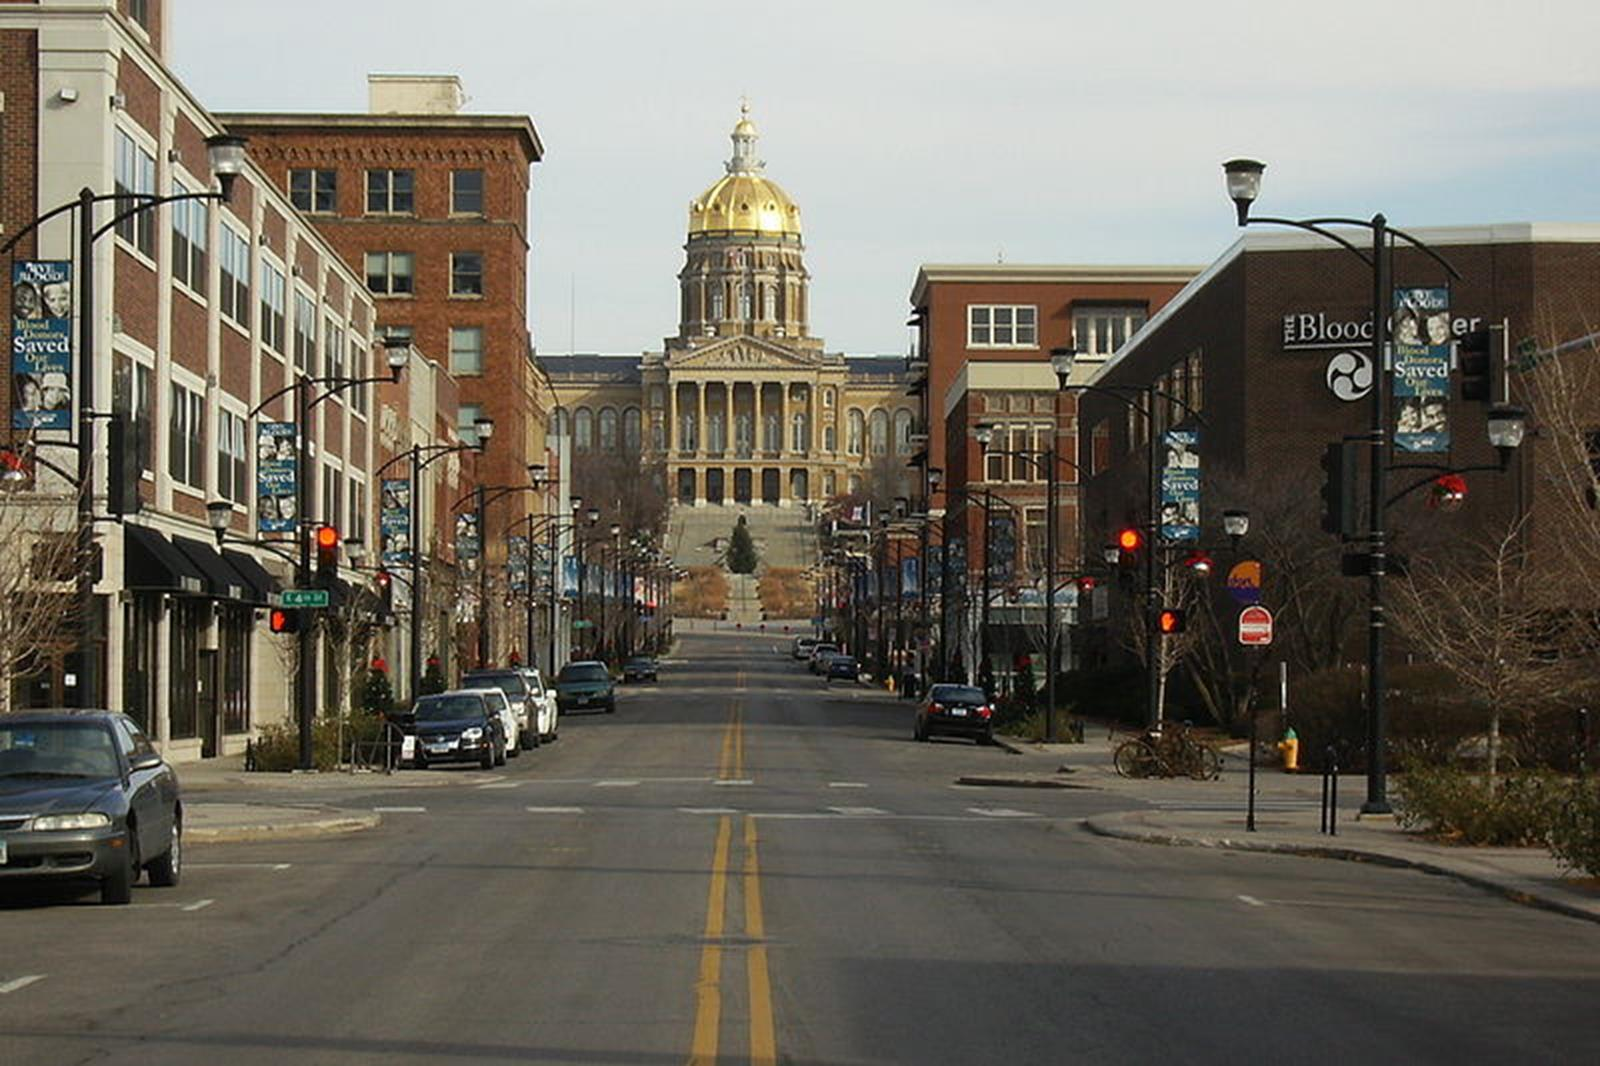 Student Travel to the Heart of Des Moines Iowa